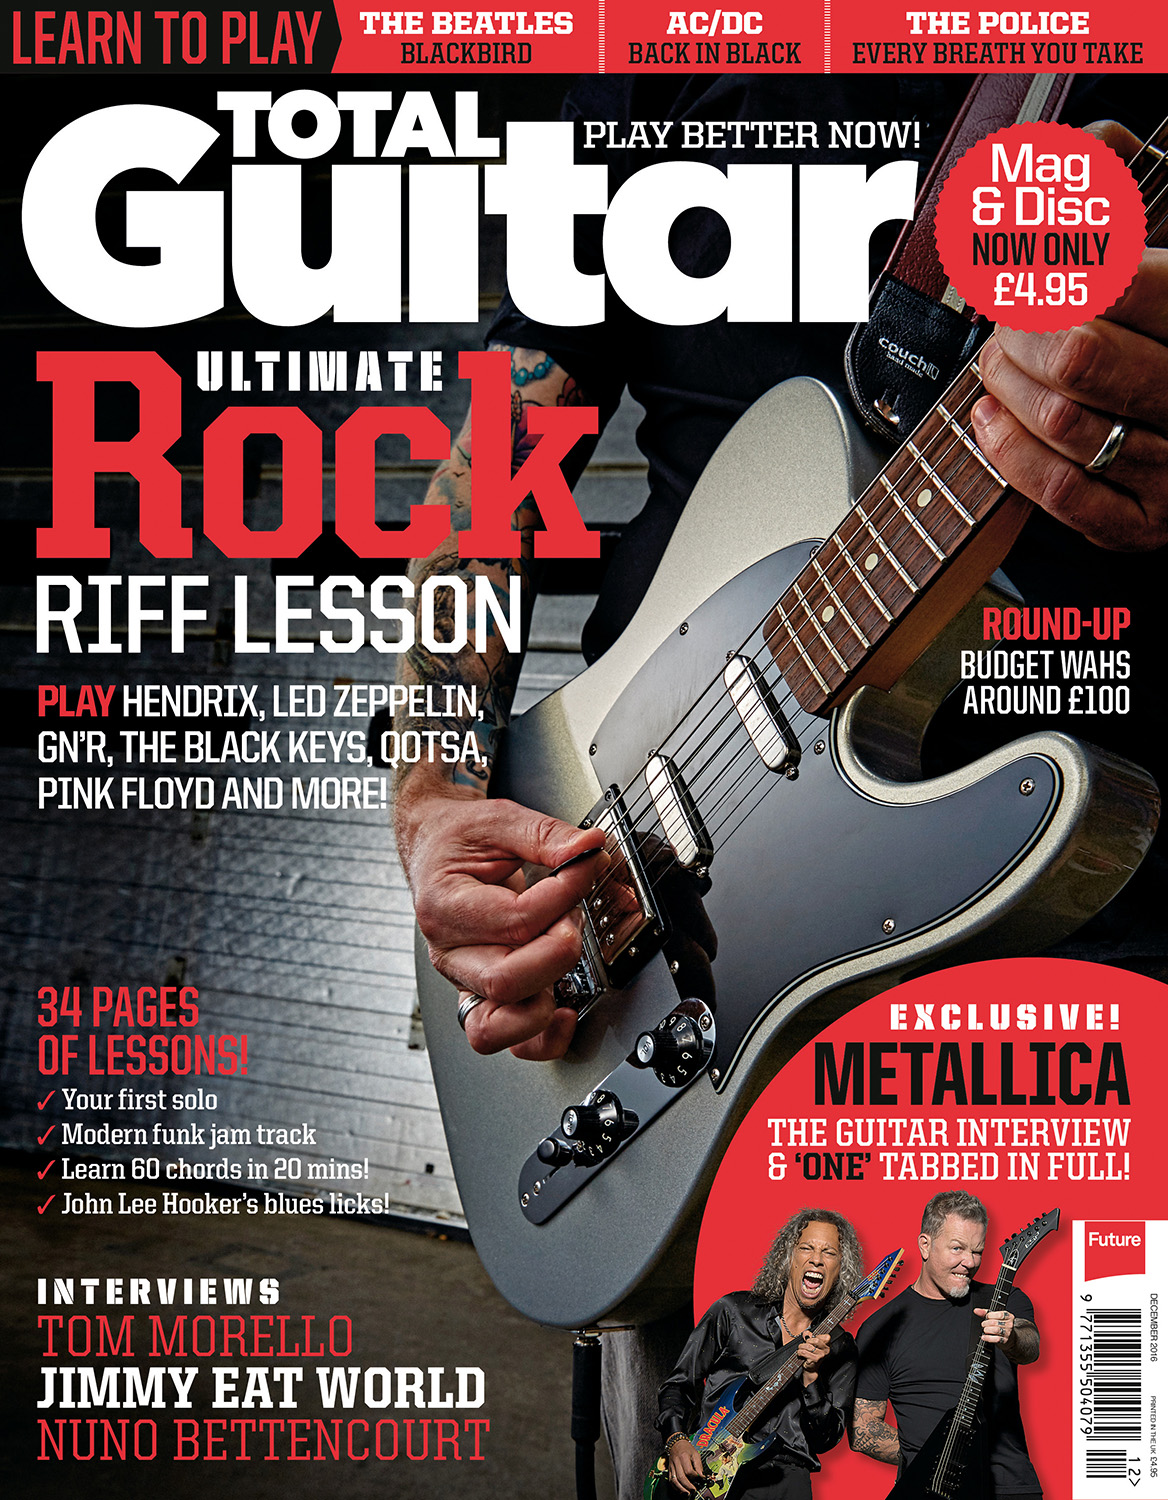 Total Guitar issue 287 cover. Photo by Adam Gasson / adamgasson.com